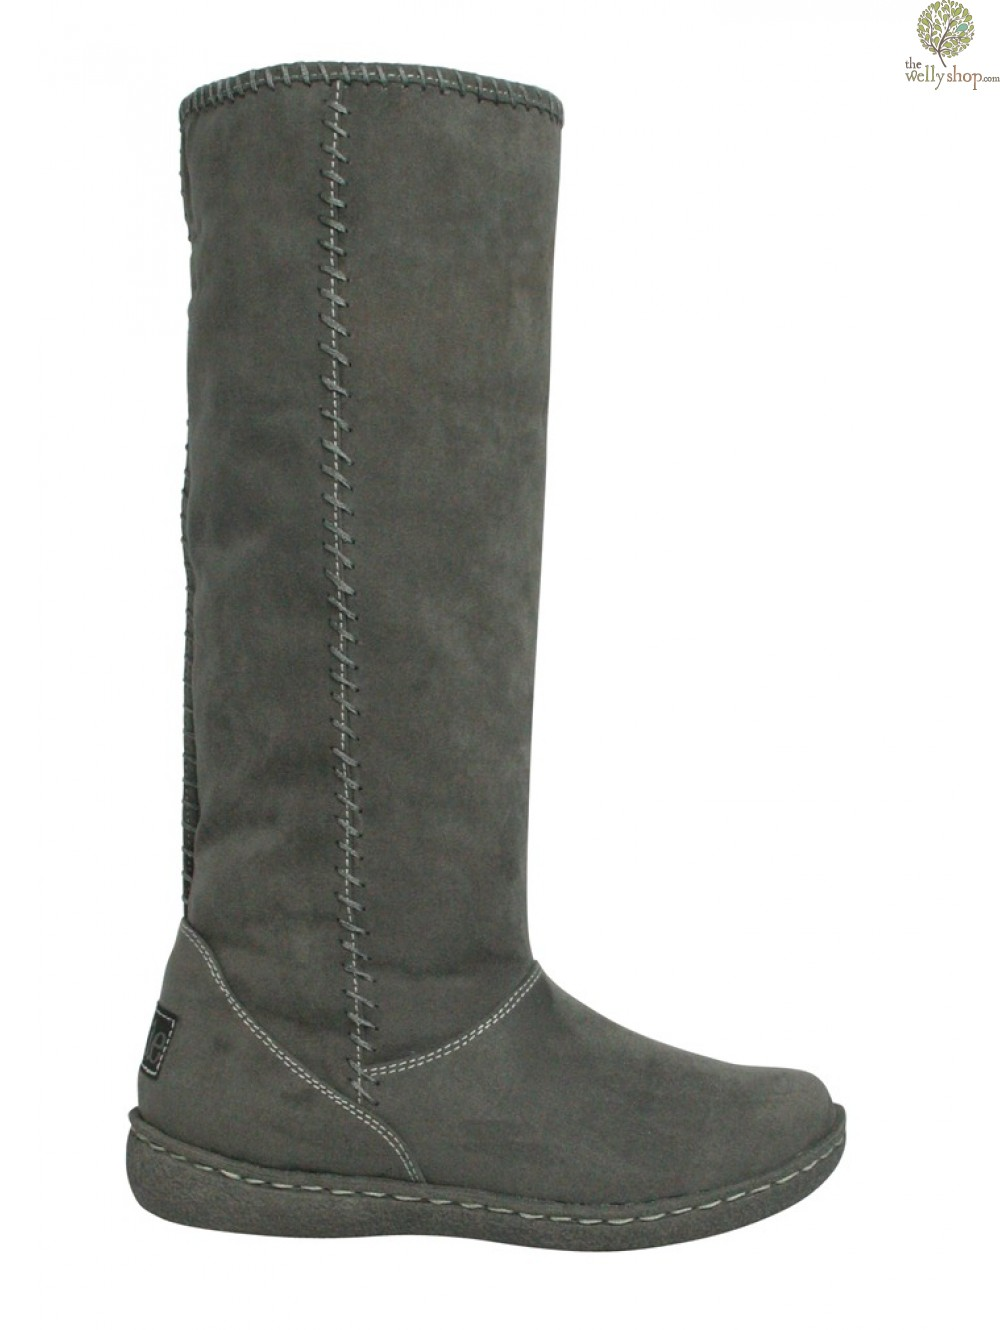 9743dd4c0 ... Pixie Holly Boots Grey Full Side Profile View